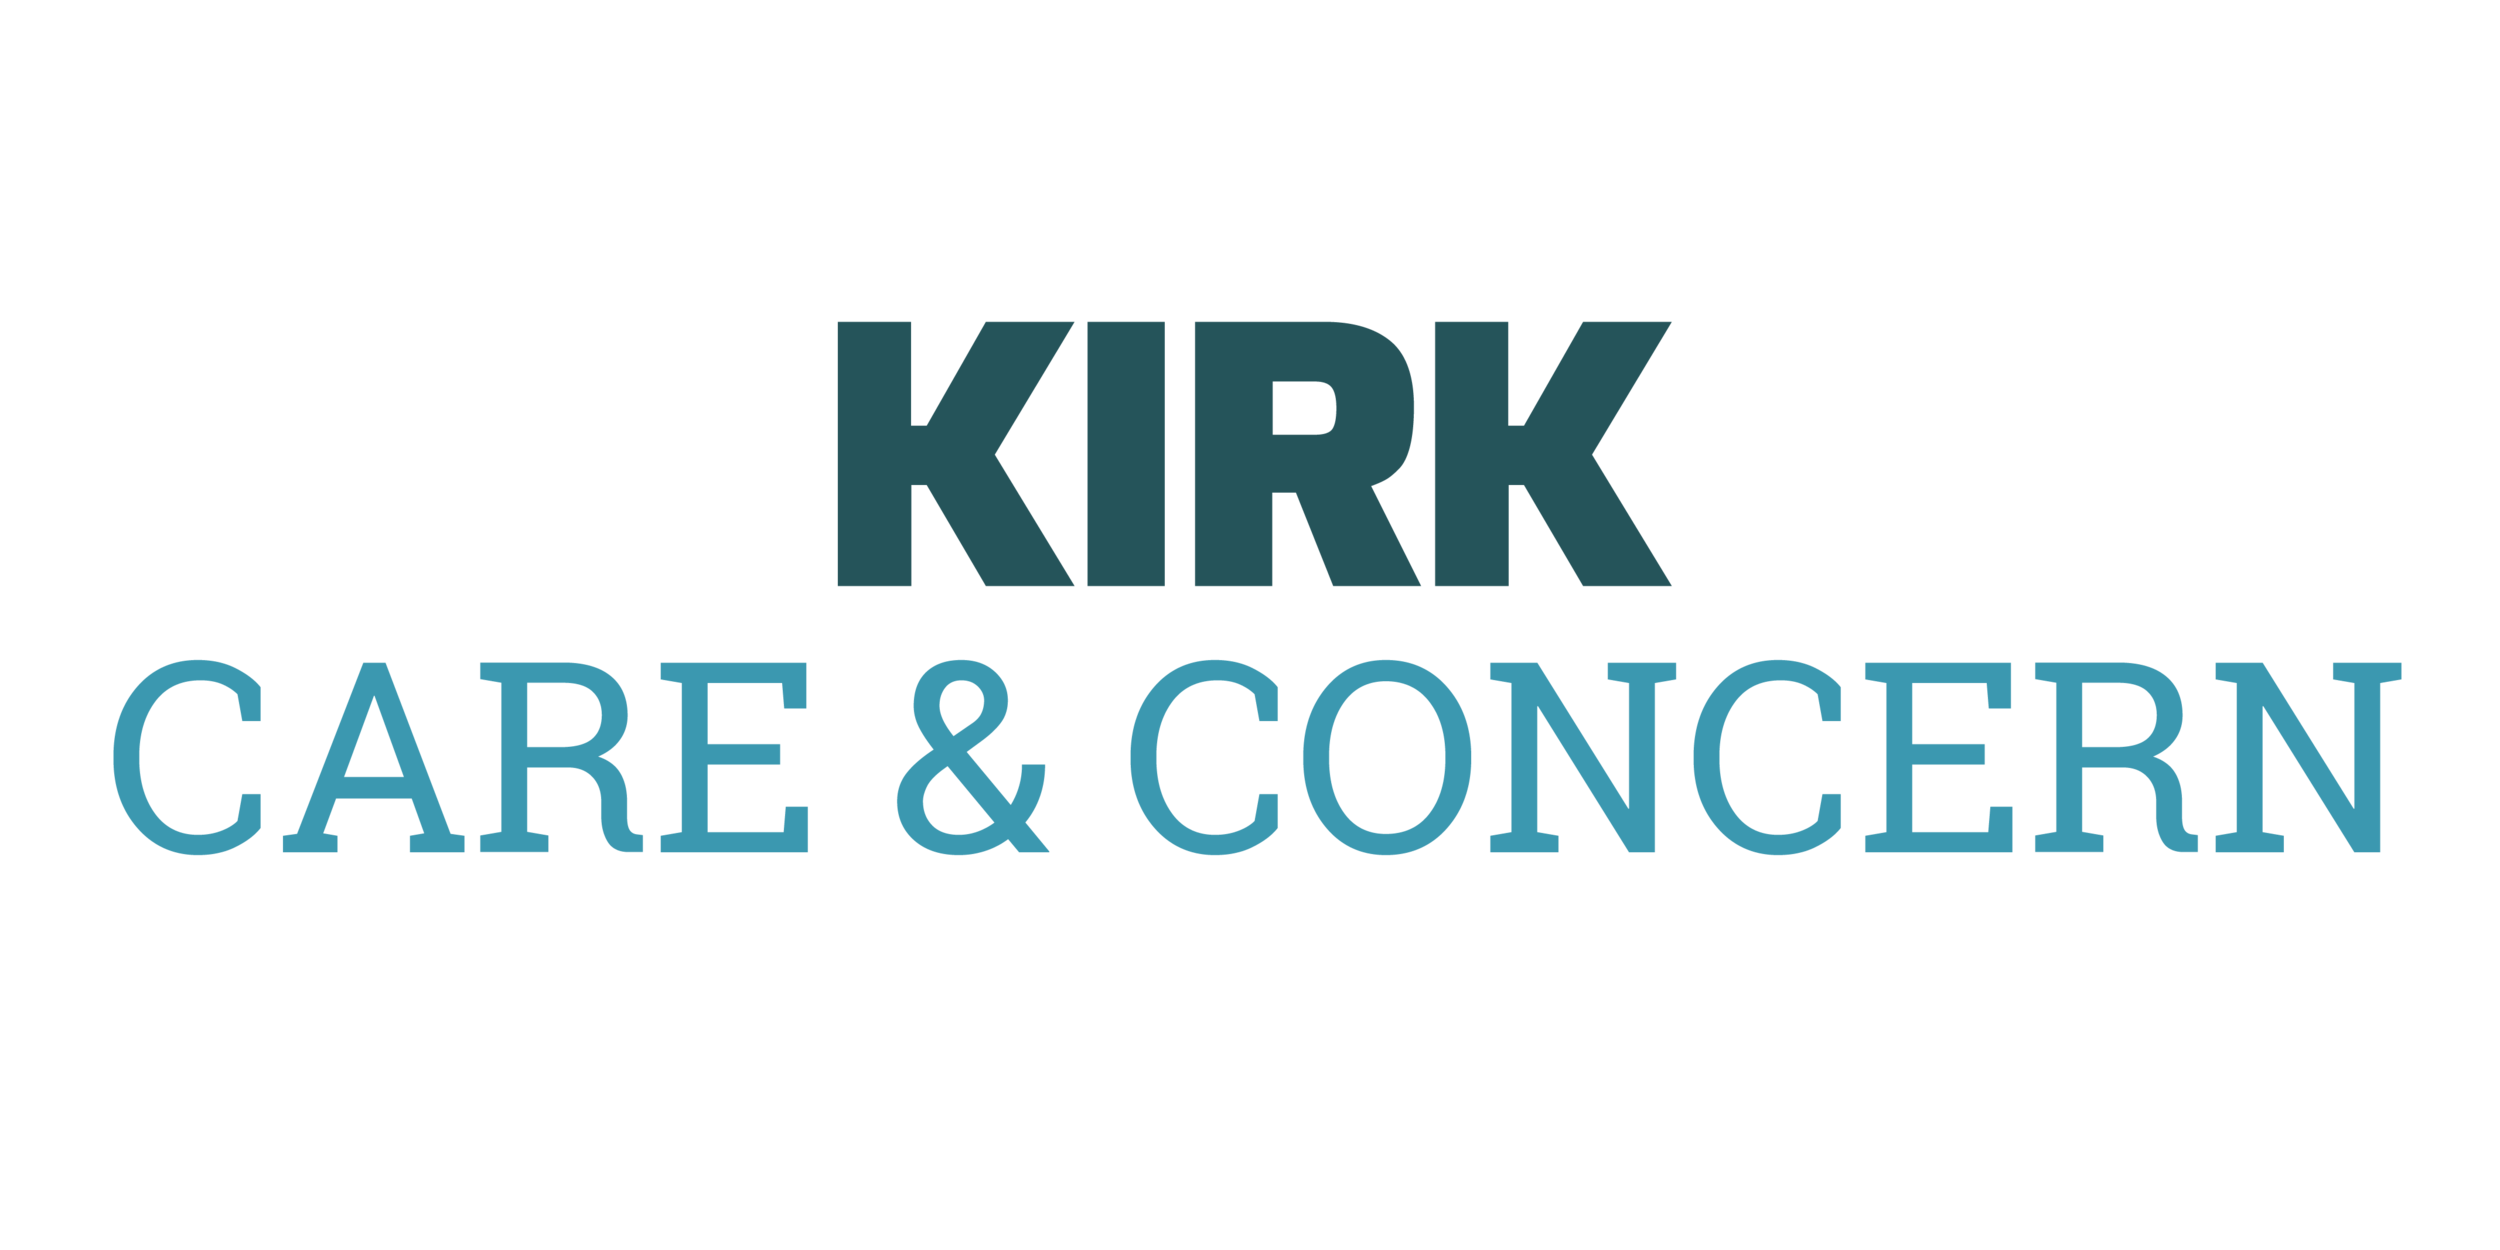 kirk_care_and_concern.png